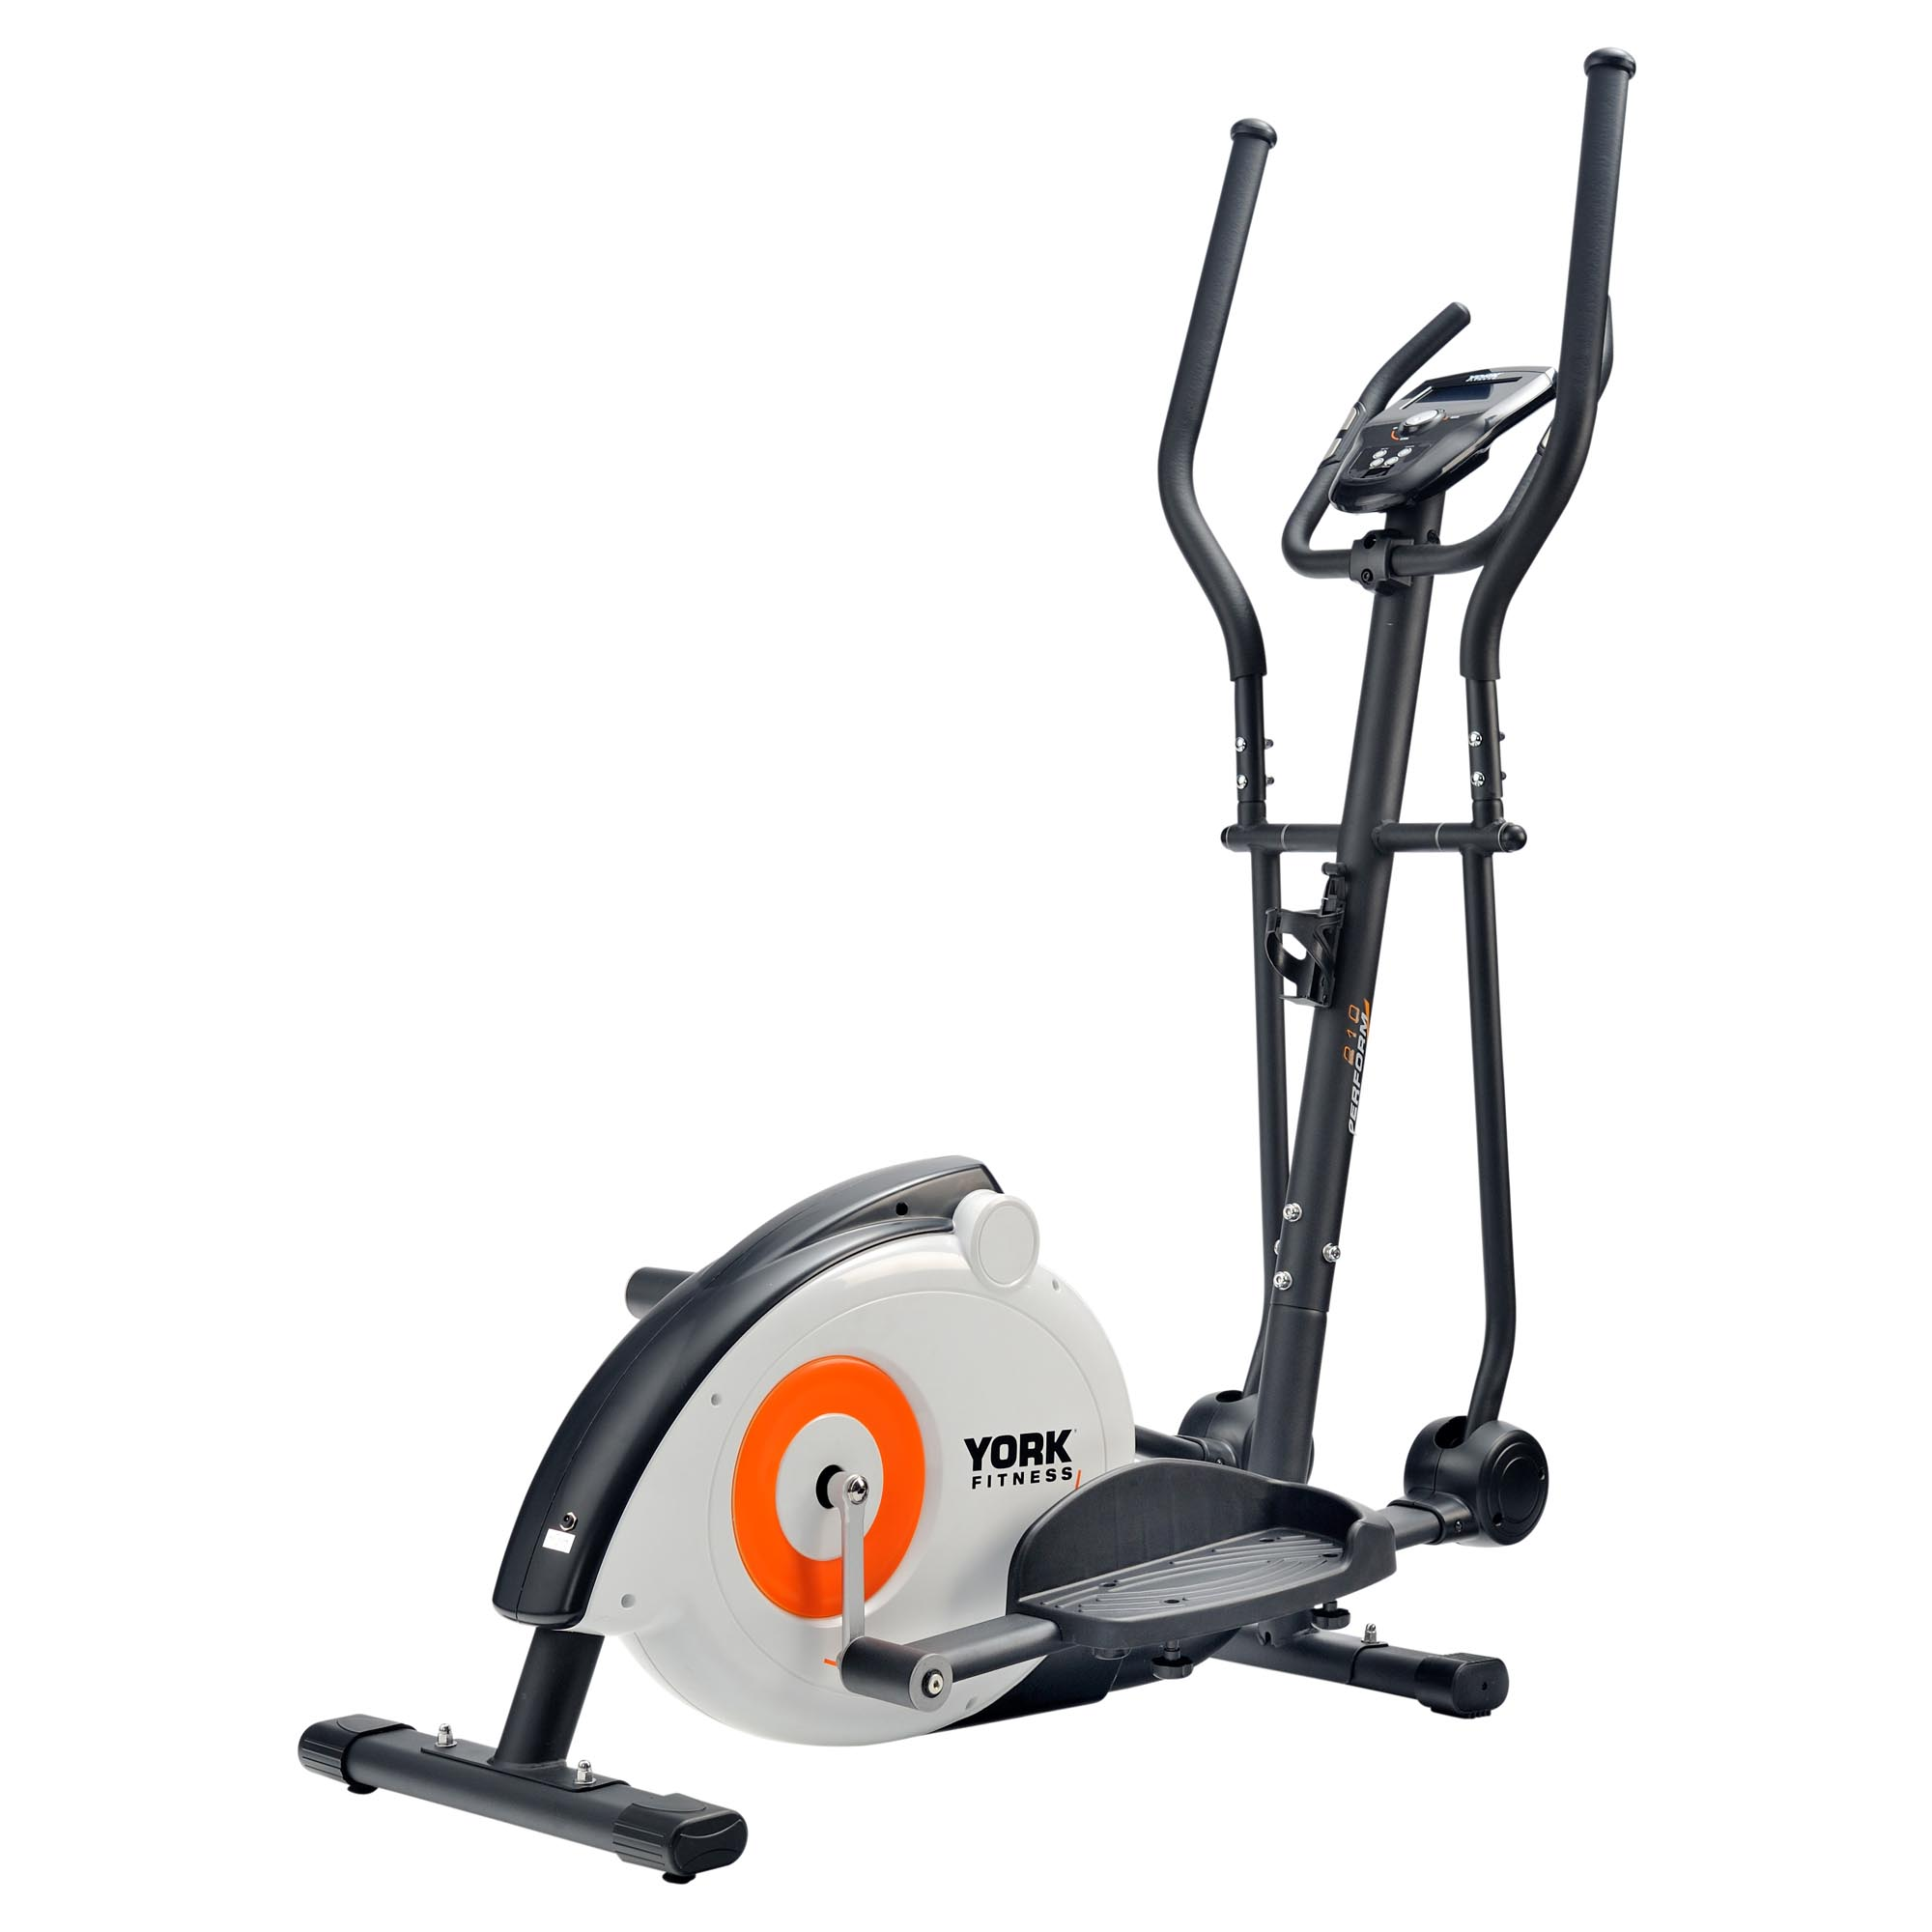 Elliptical Vs Bike For Weight Loss: Elliptical Trainer Weight Loss Success Stories 2014, Free